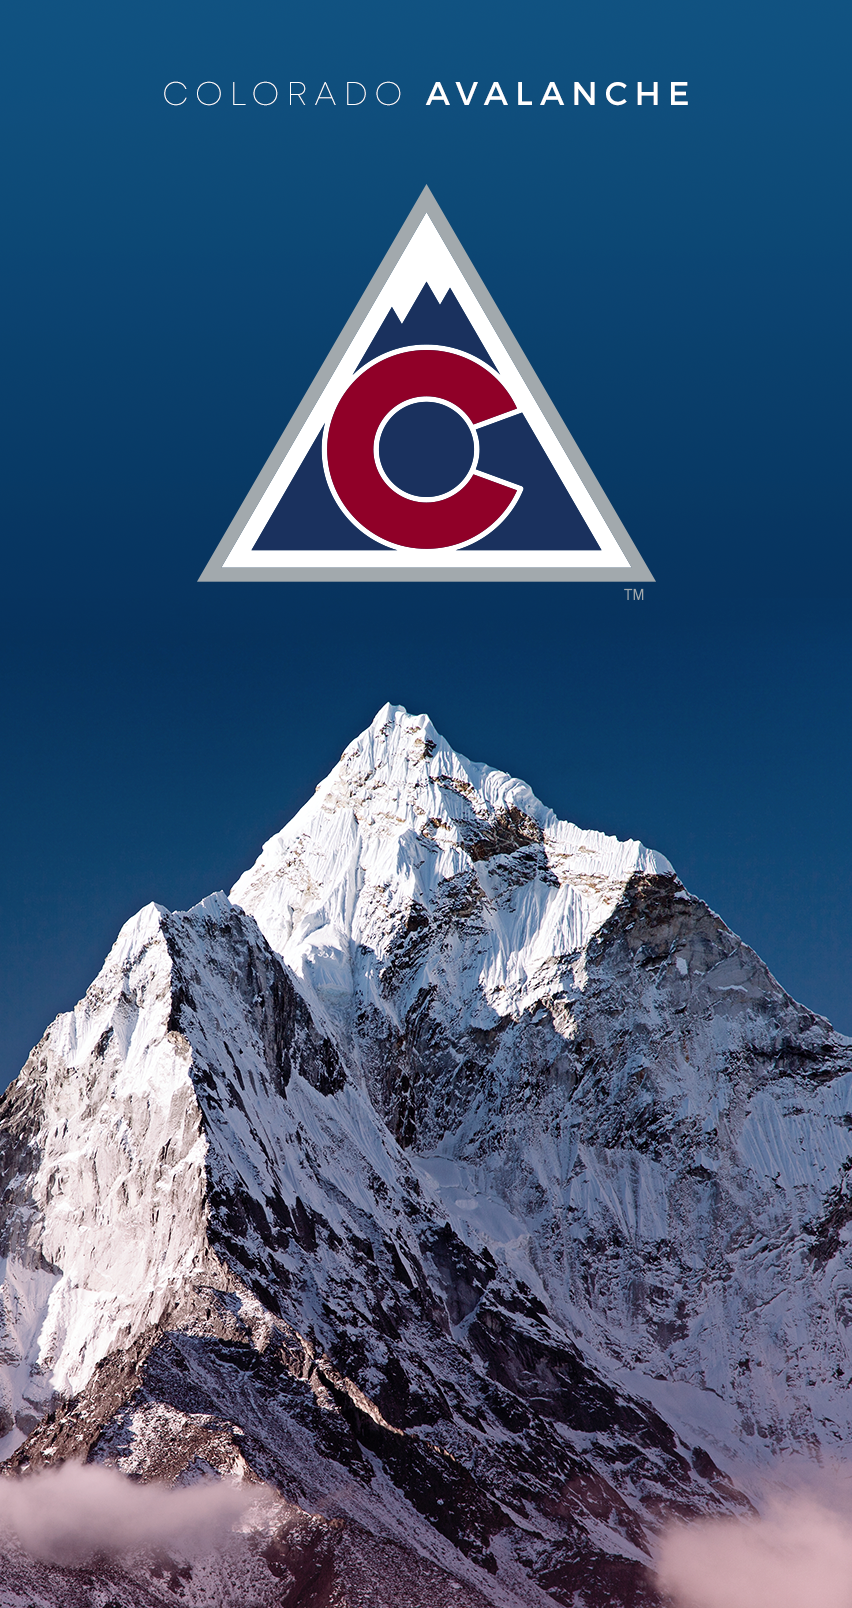 852x1608 - Colorado Avalanche Wallpapers 2